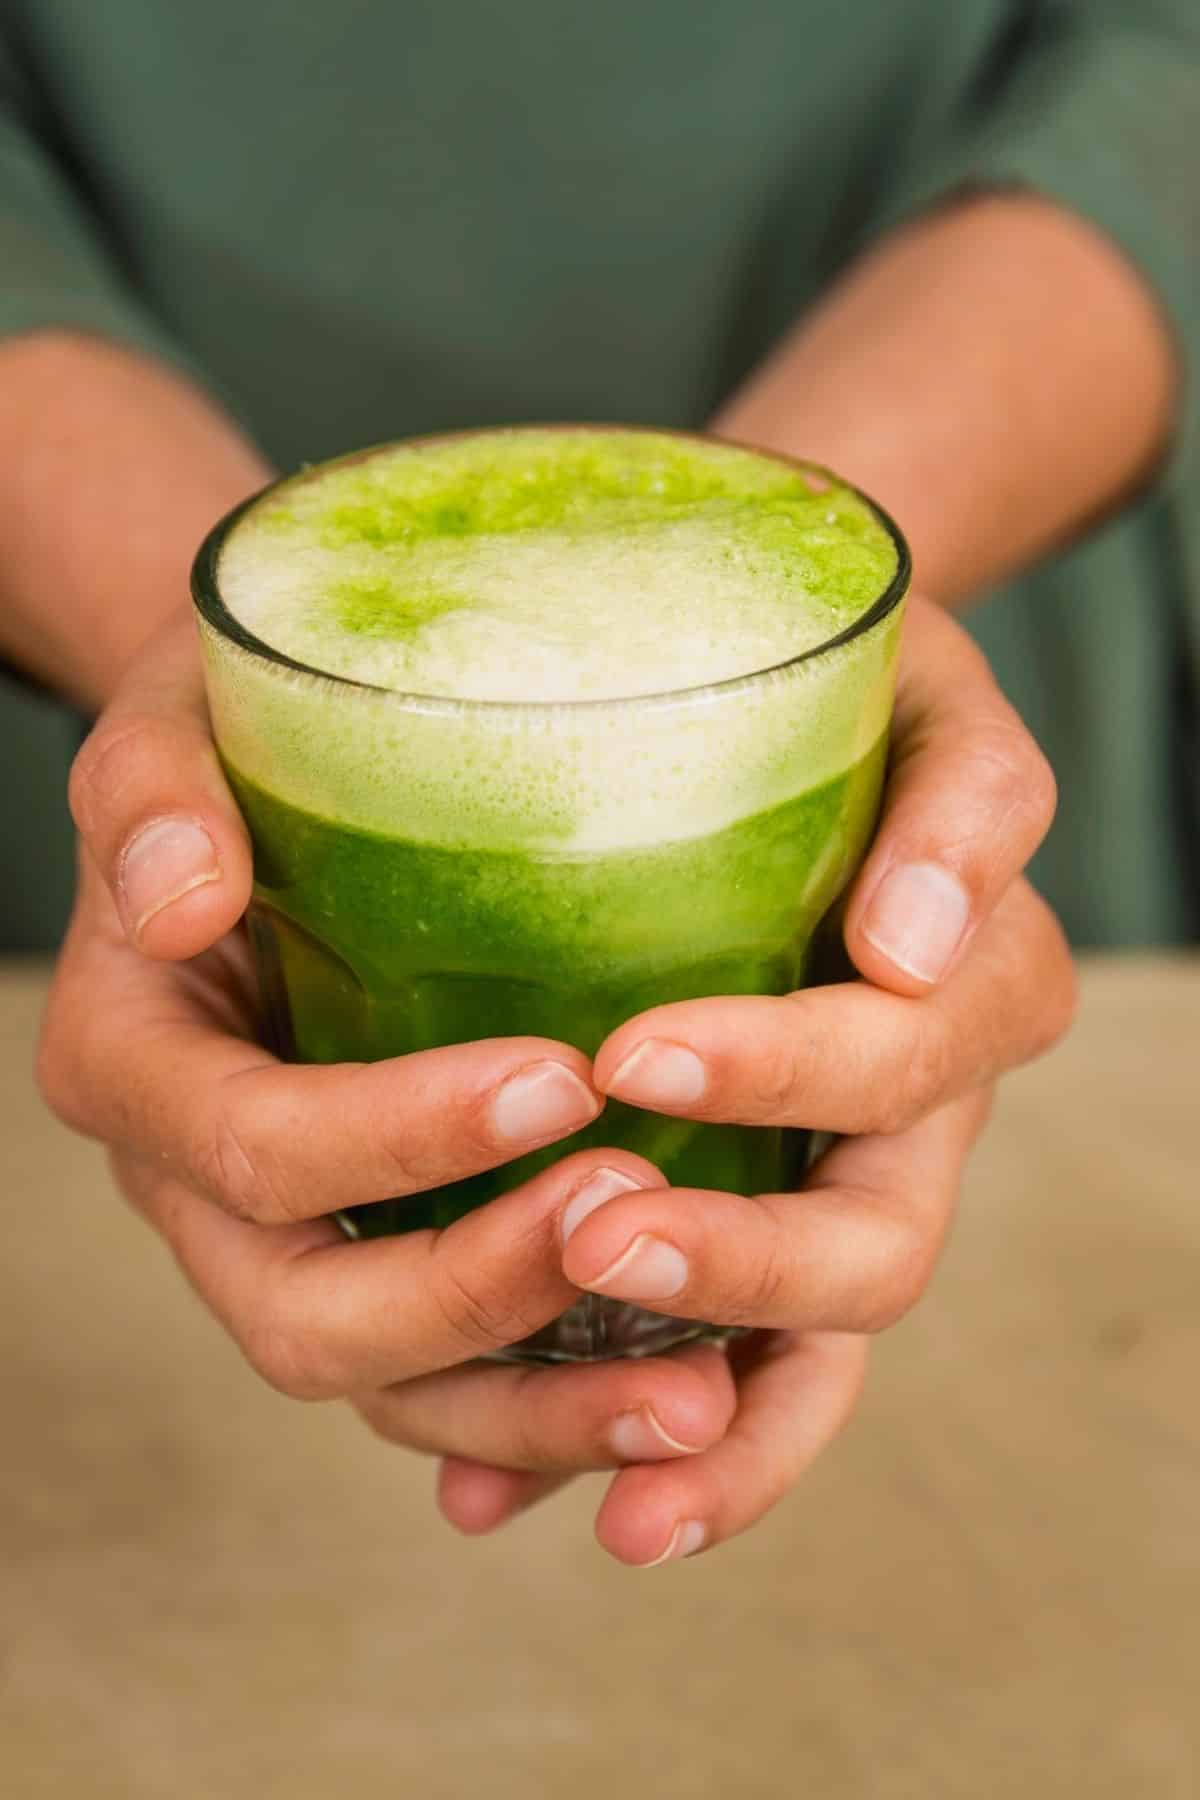 two hands holding a glass of green juice with foam on top